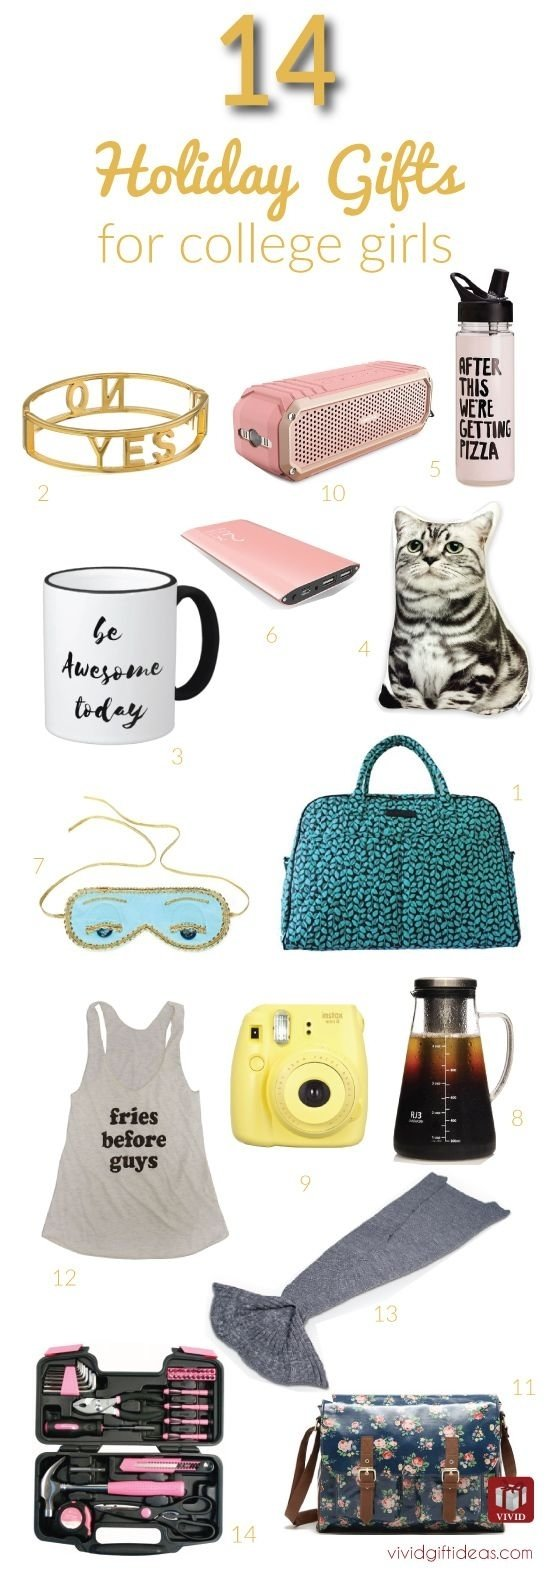 10 Stunning Gift Ideas For College Guys 14 great christmas gift ideas for college girls college girls 5 2020